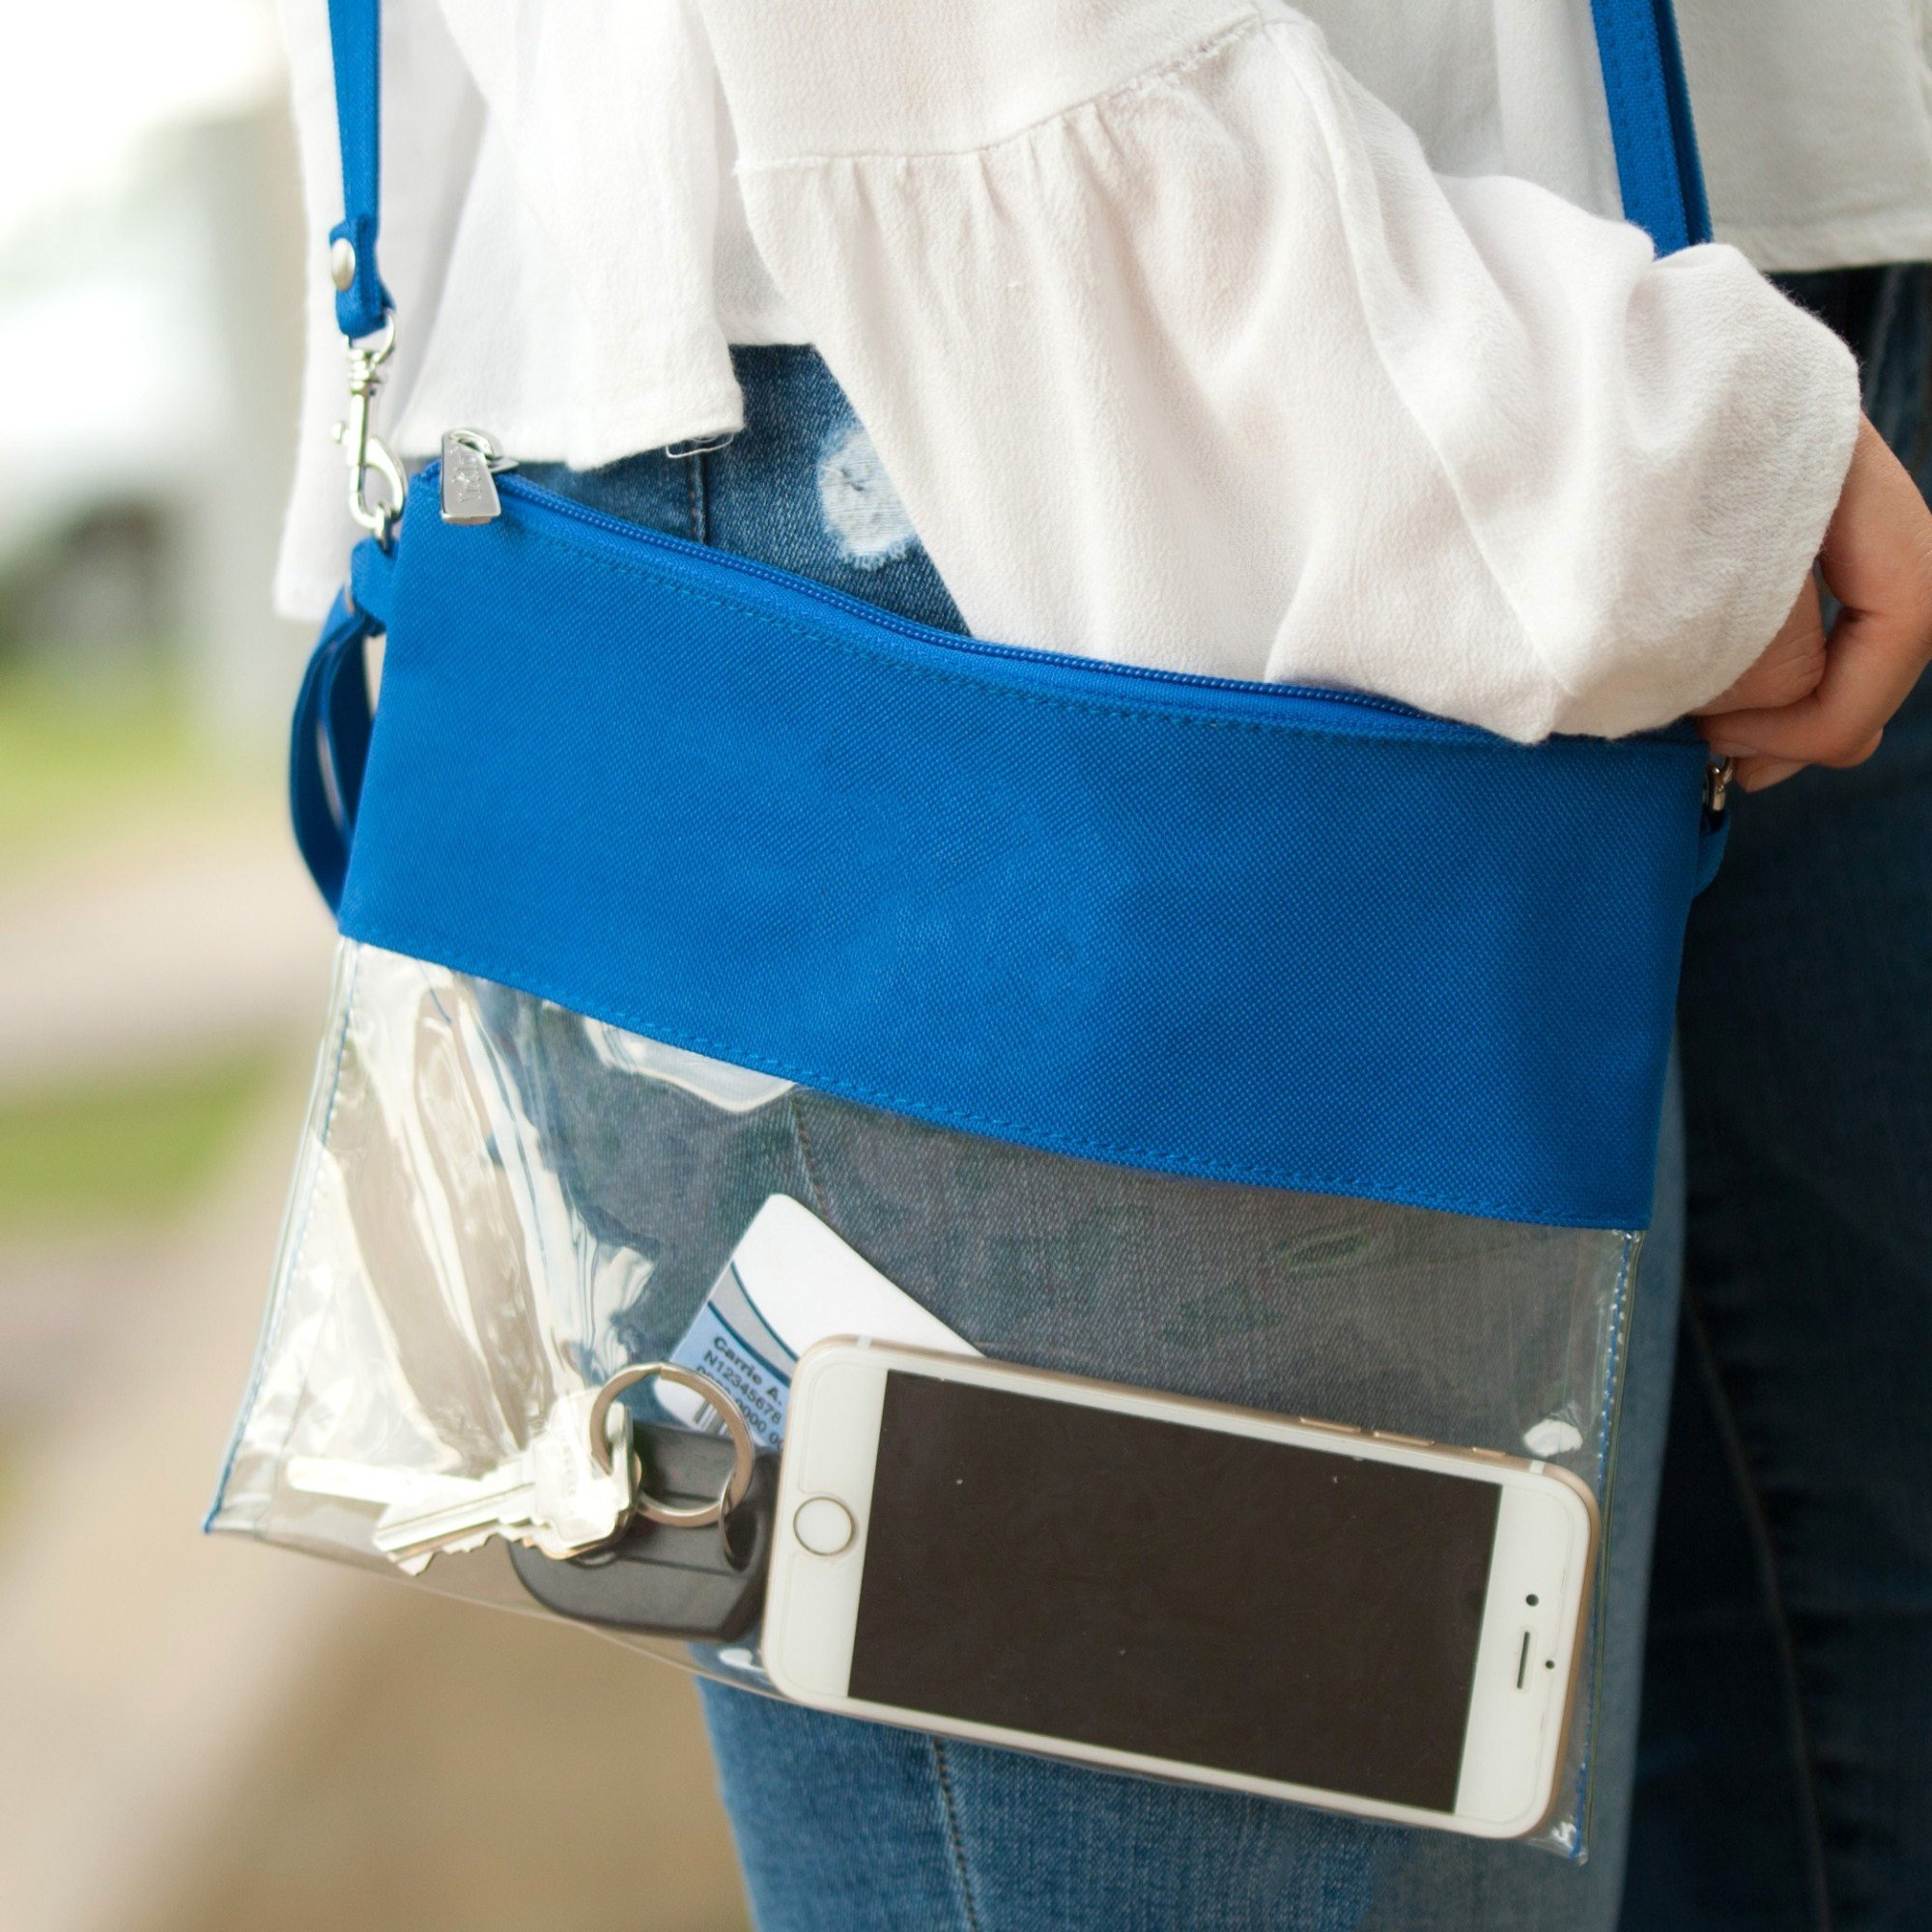 MONOBLANKS Clear Zip Pouch with Detachable Crossbody Adjustable Strap and Wristlet (Blue)